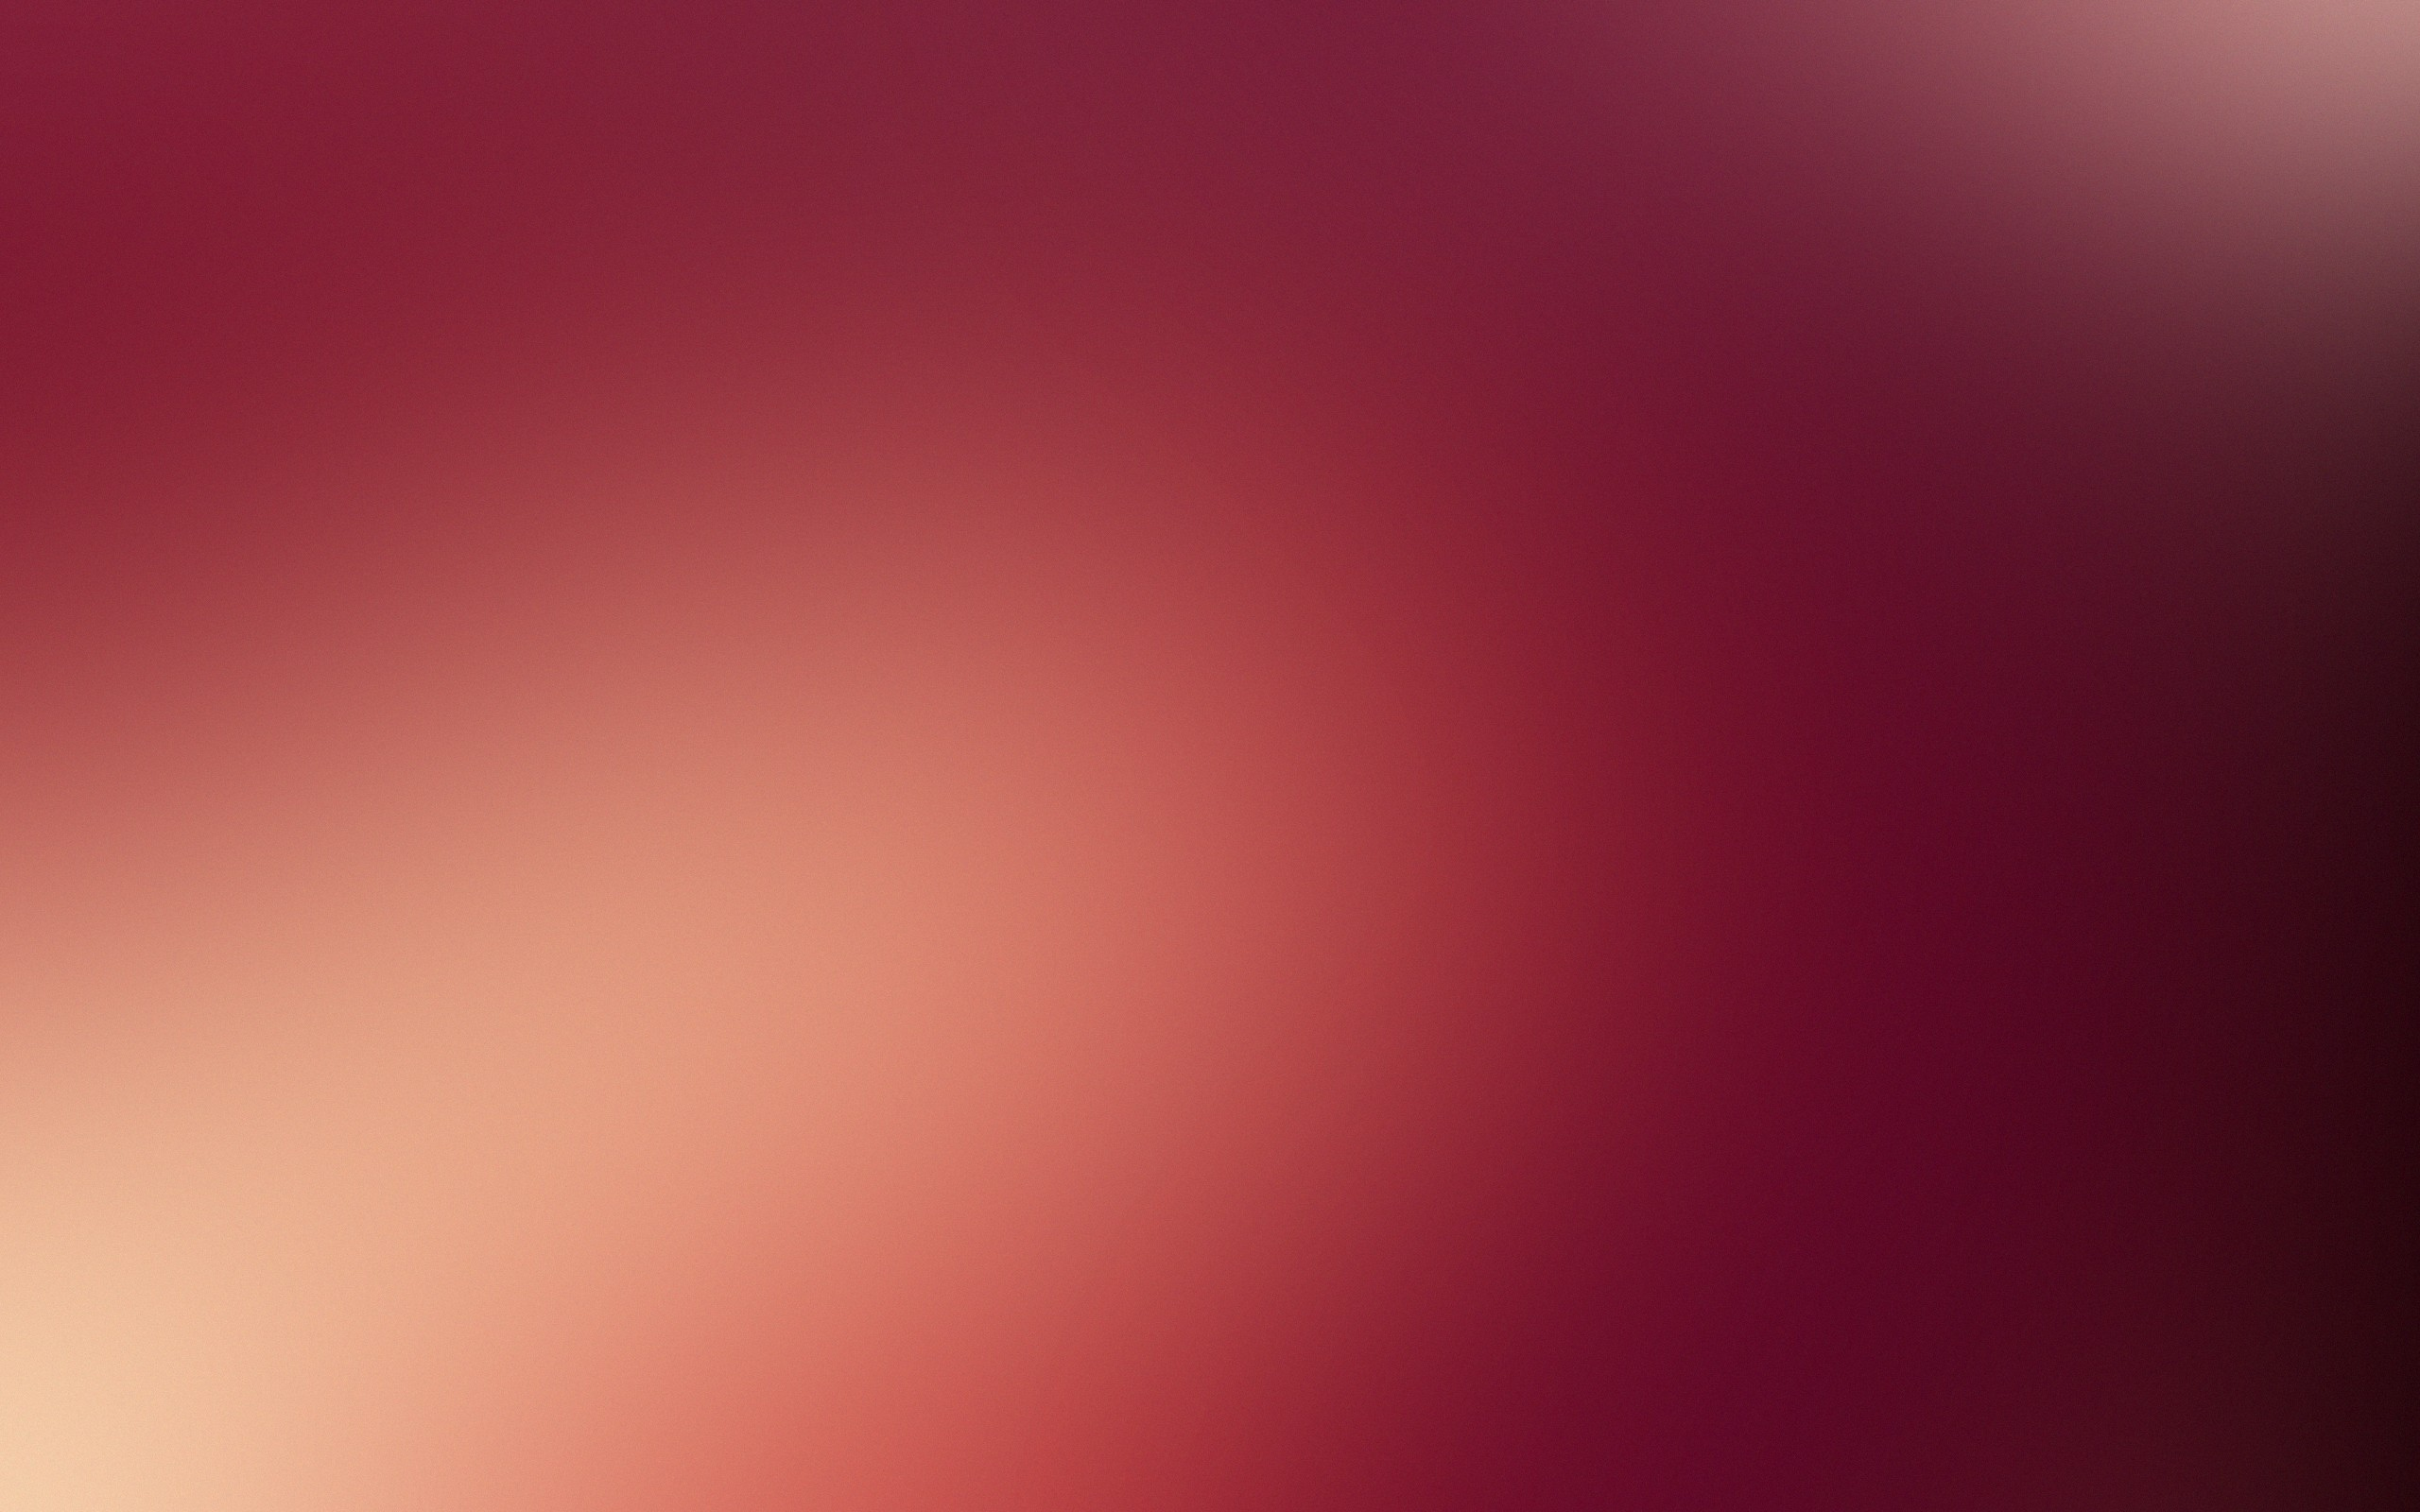 Free Blur Wallpaper